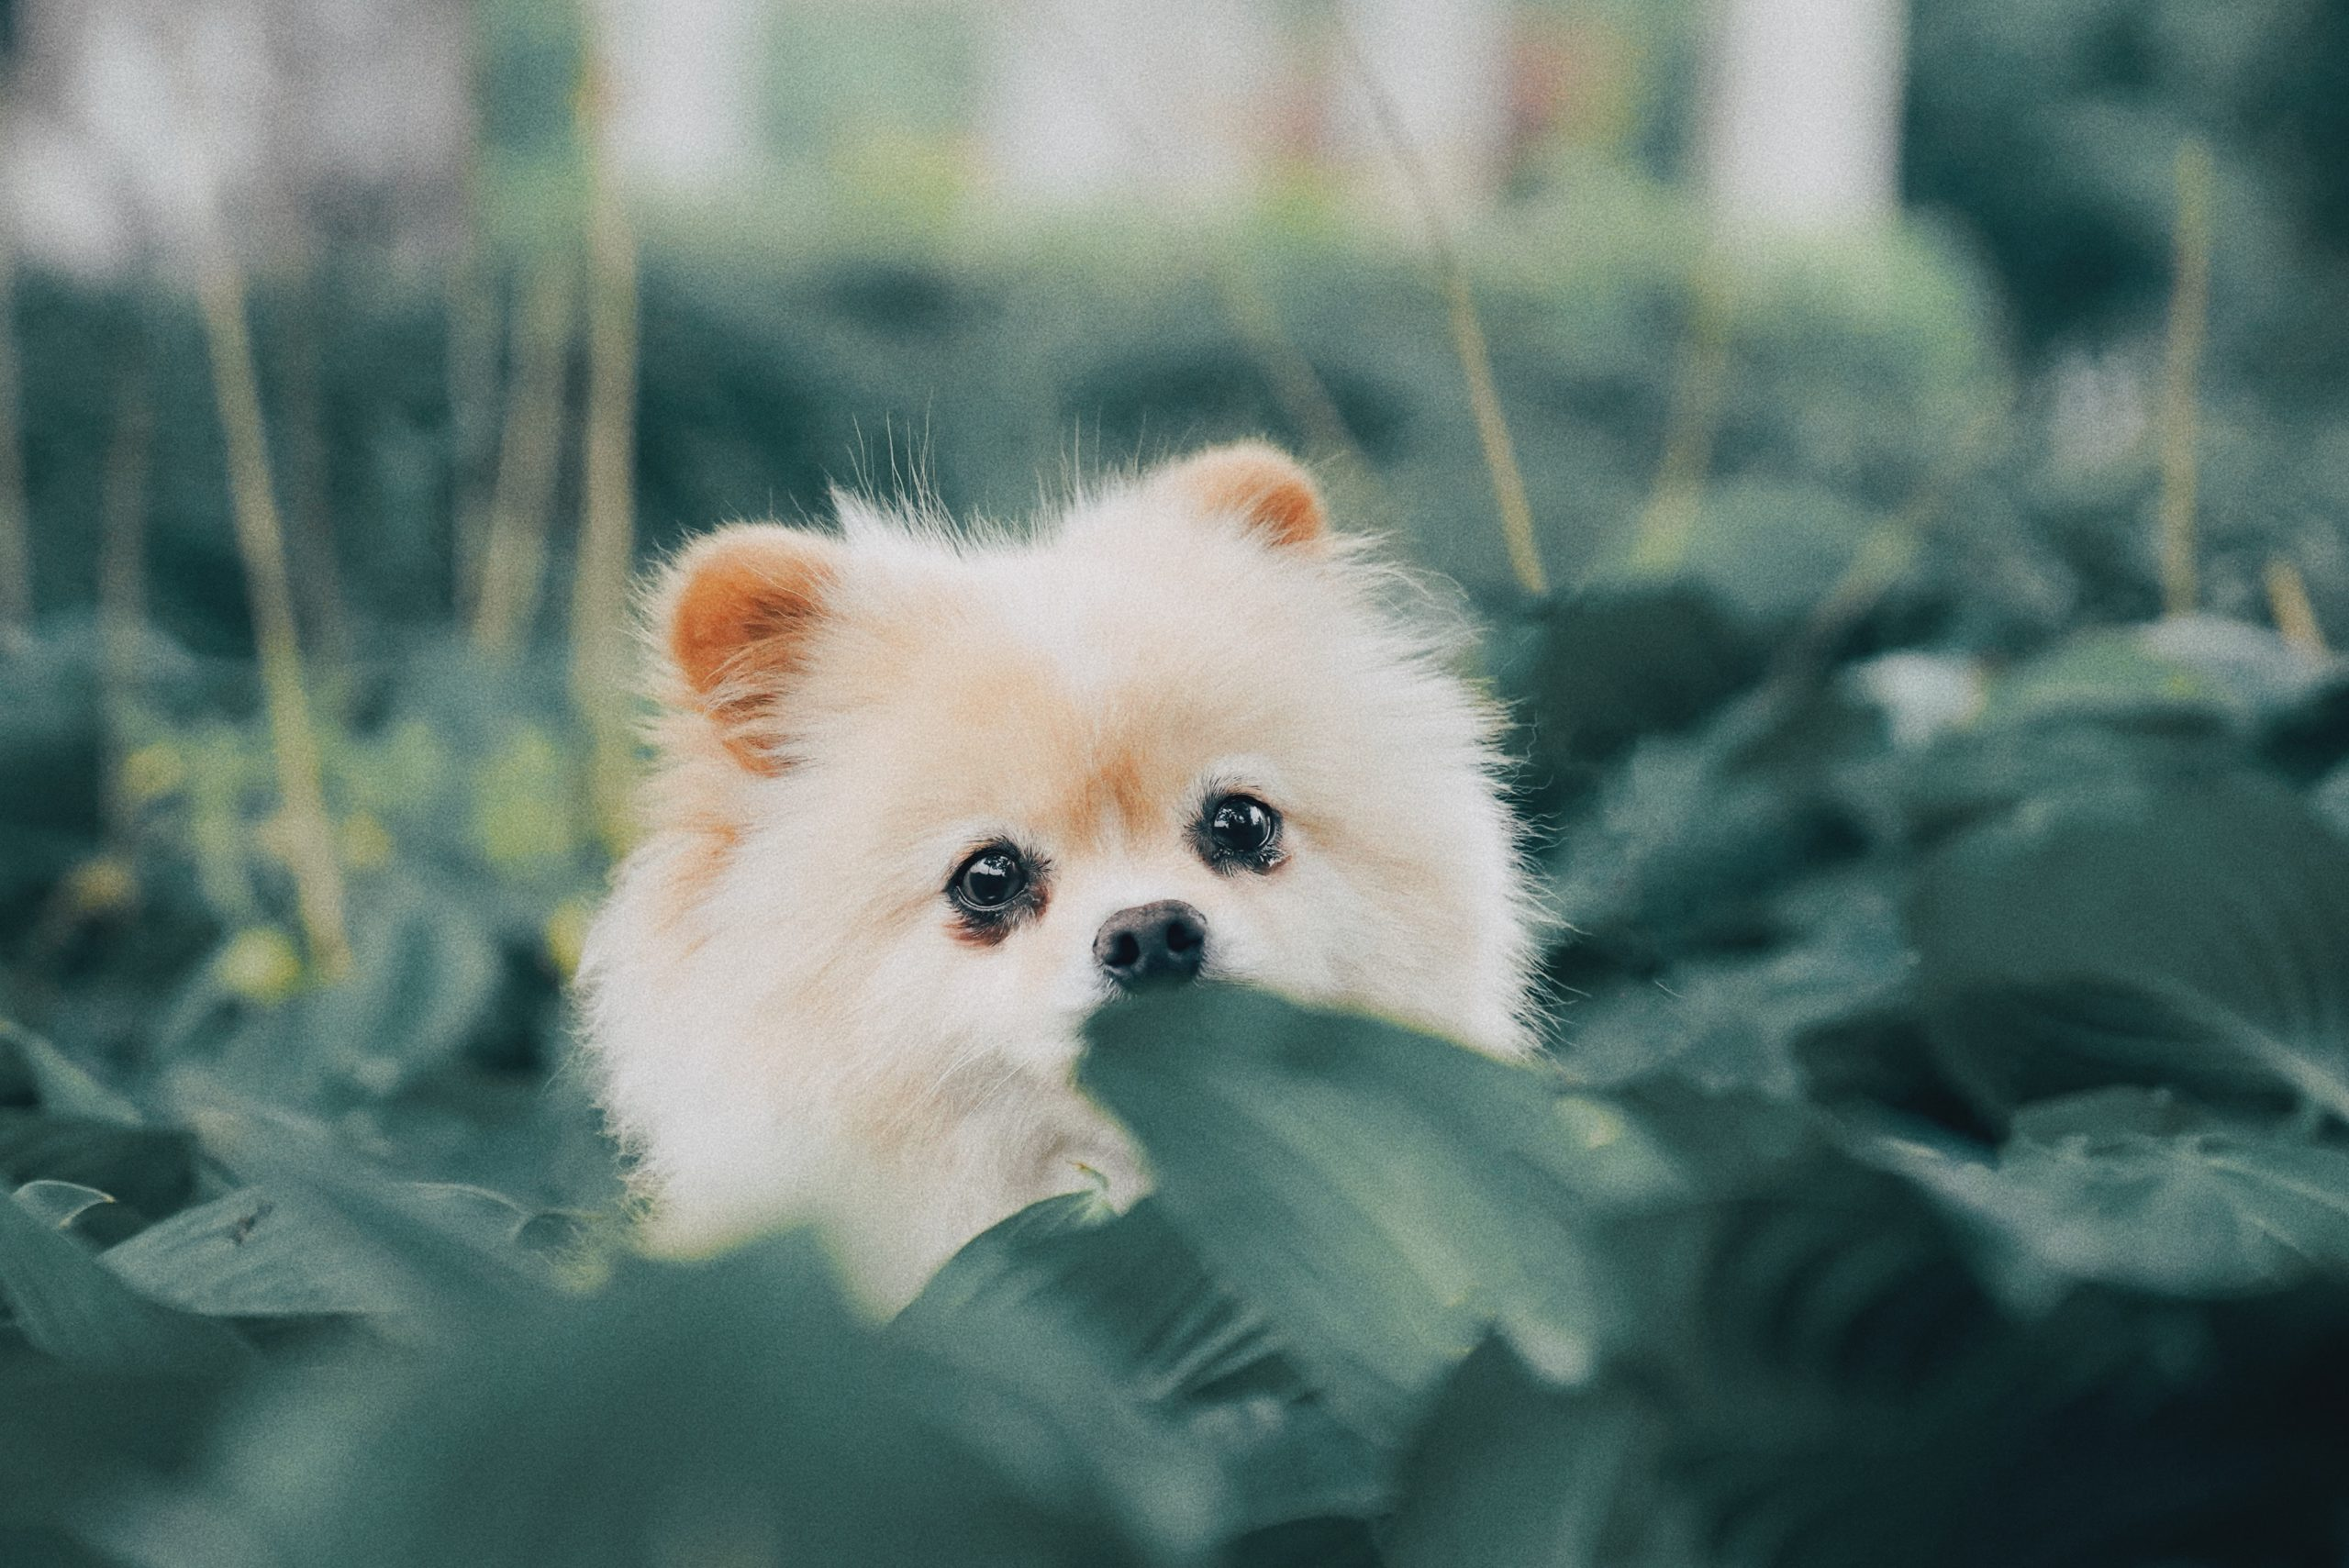 Teacup Pomeranian Facts Every Dog